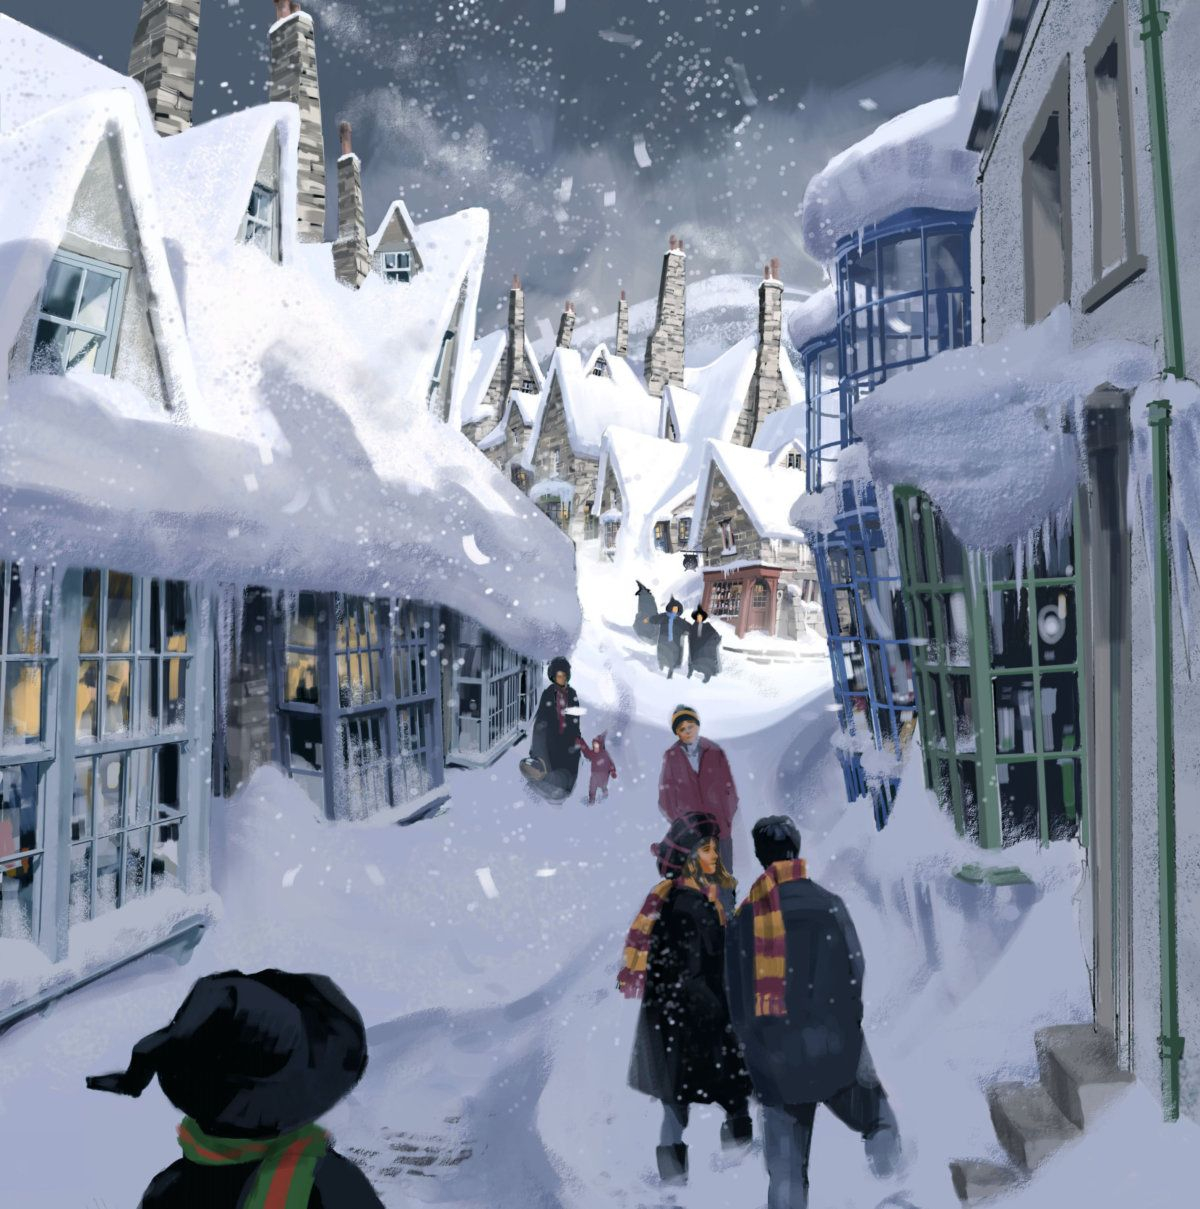 1200x1209 All they want for Christmas: A Harry Potter gift guide - Pottermore